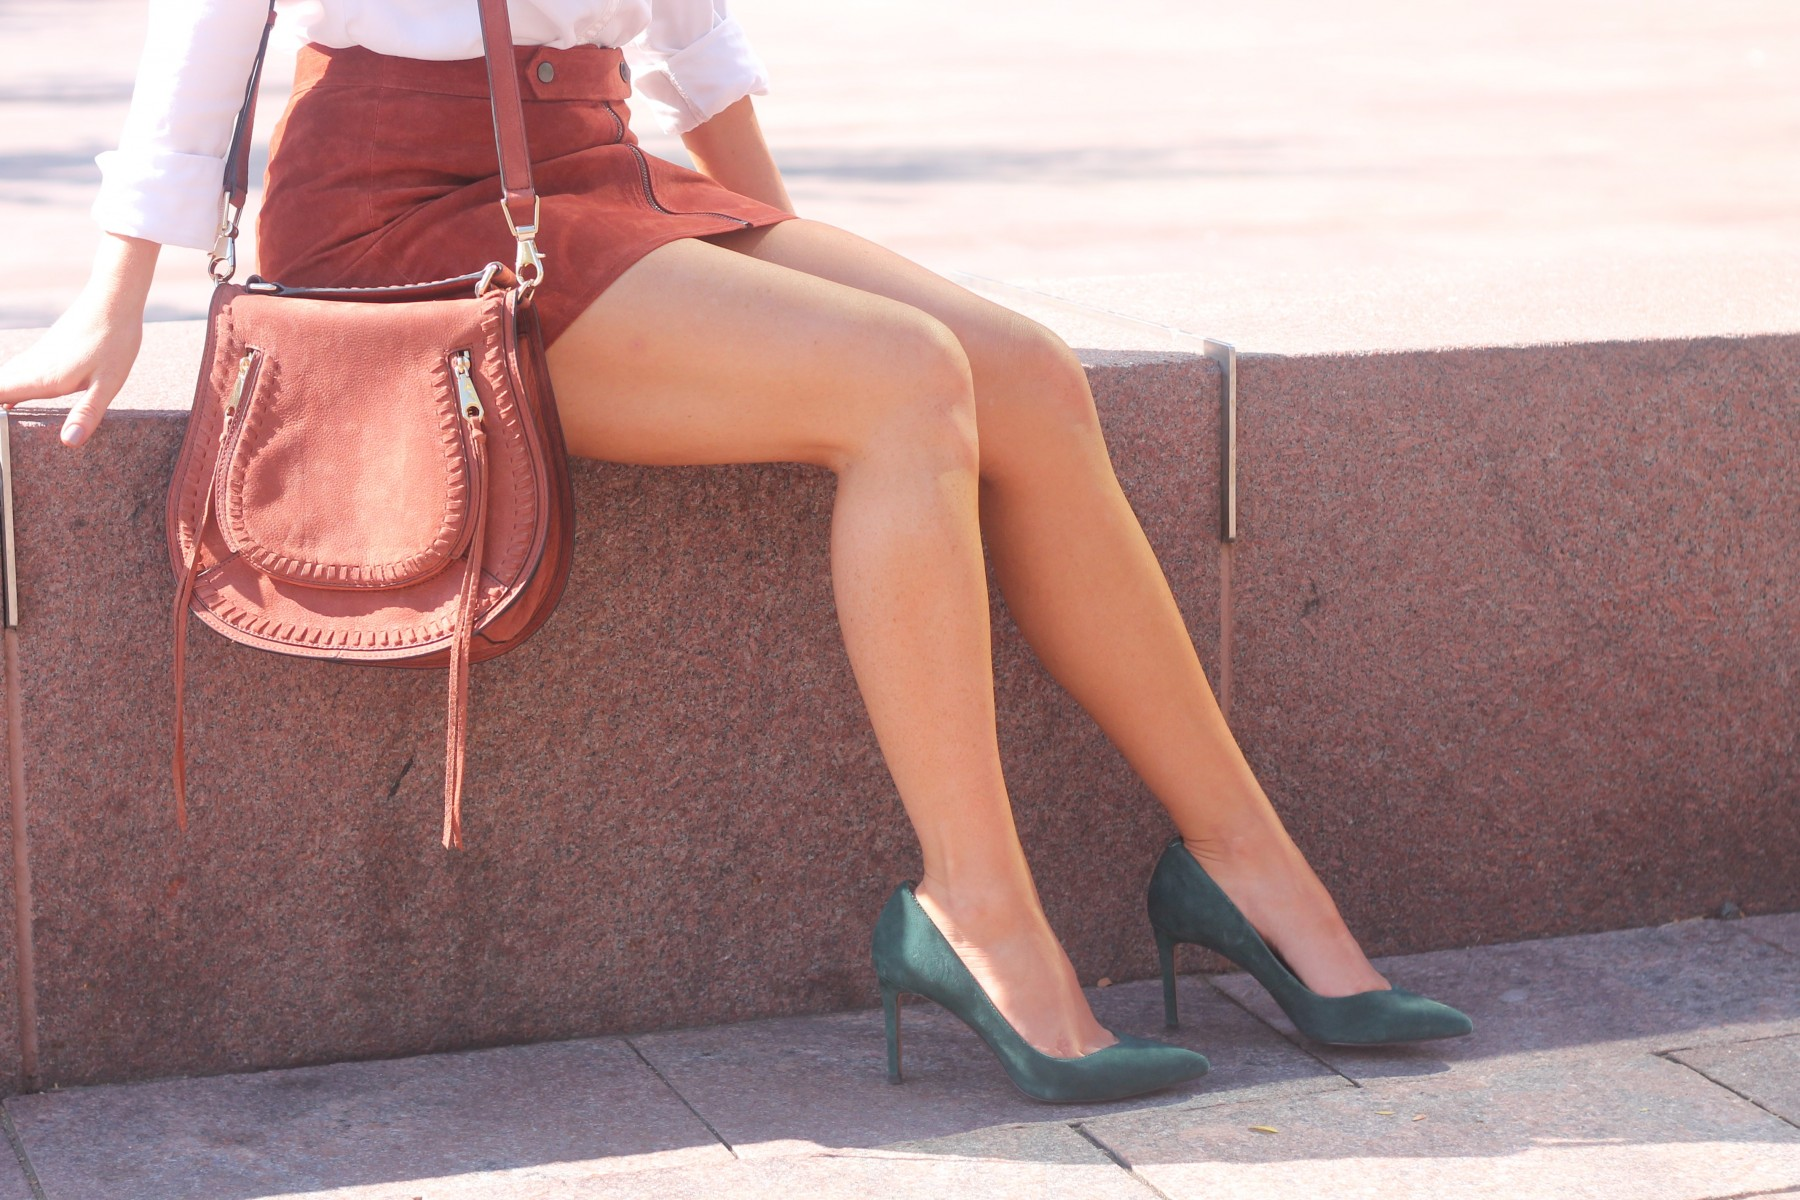 rebecca minkoff suede whiskey saddle bag and banana republic green suede heels